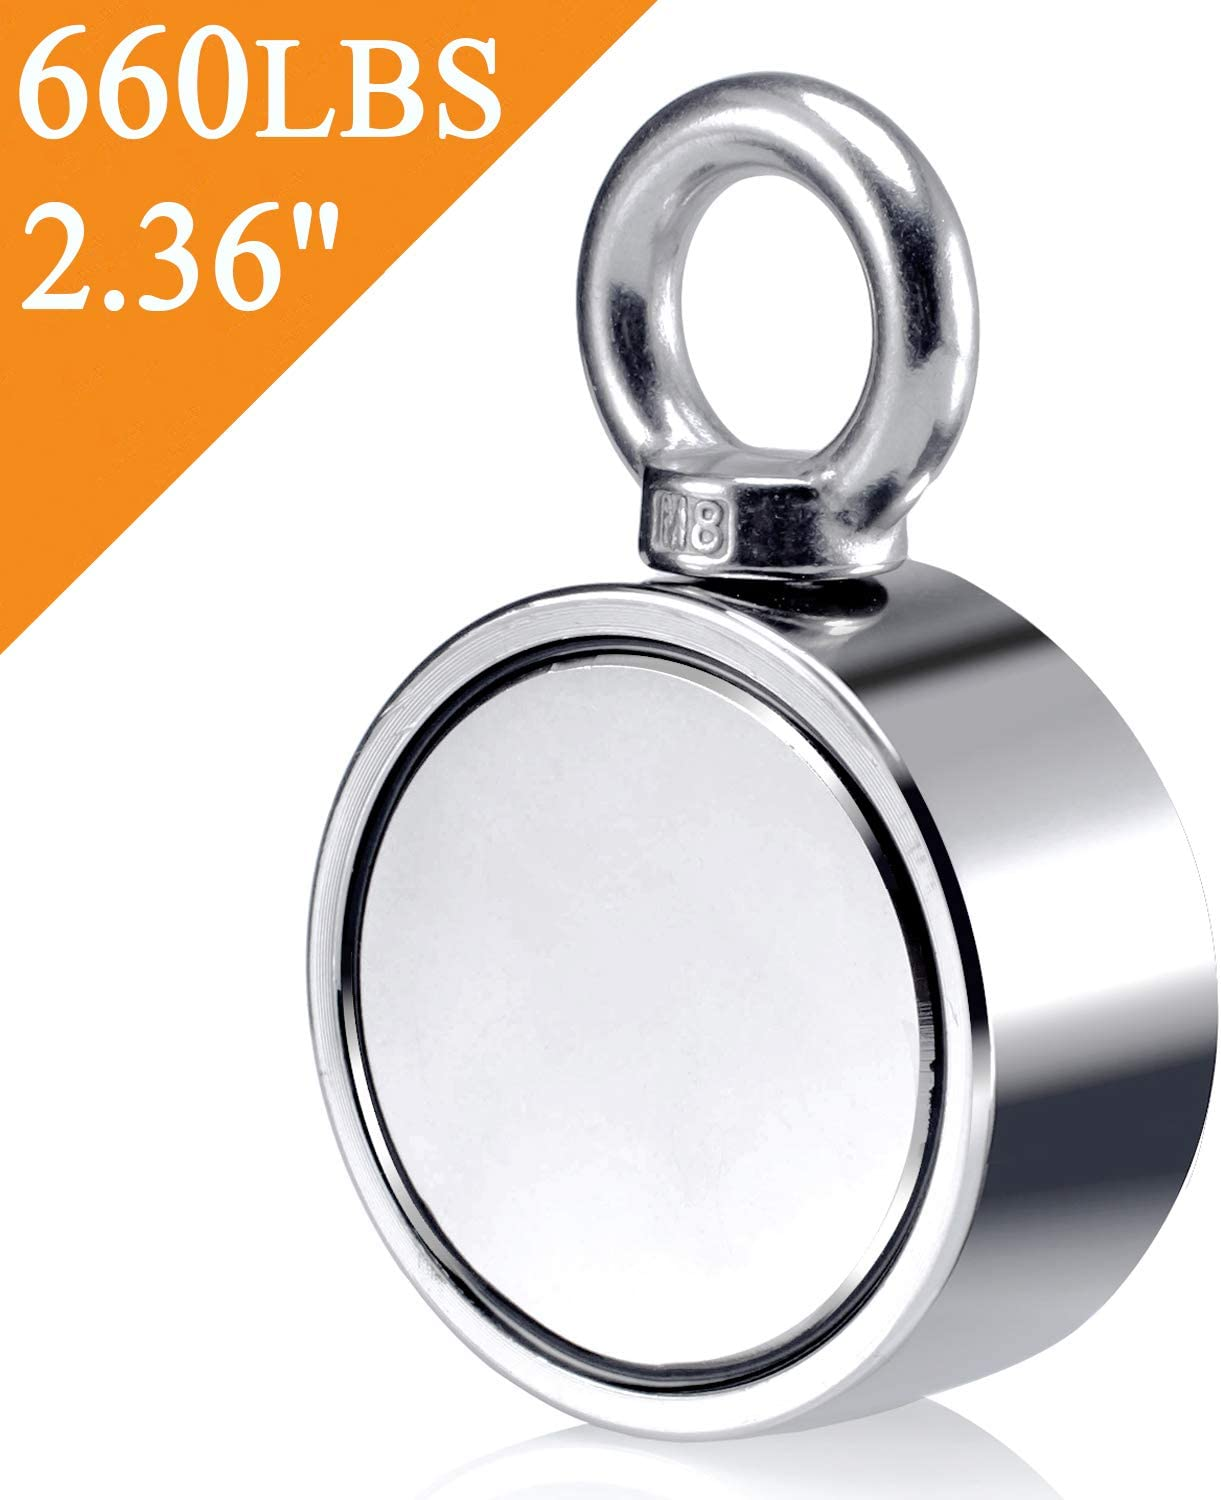 600KG Combined 300KG 660LBS Pull Force Fishing Magnets Double Sided Neodymium